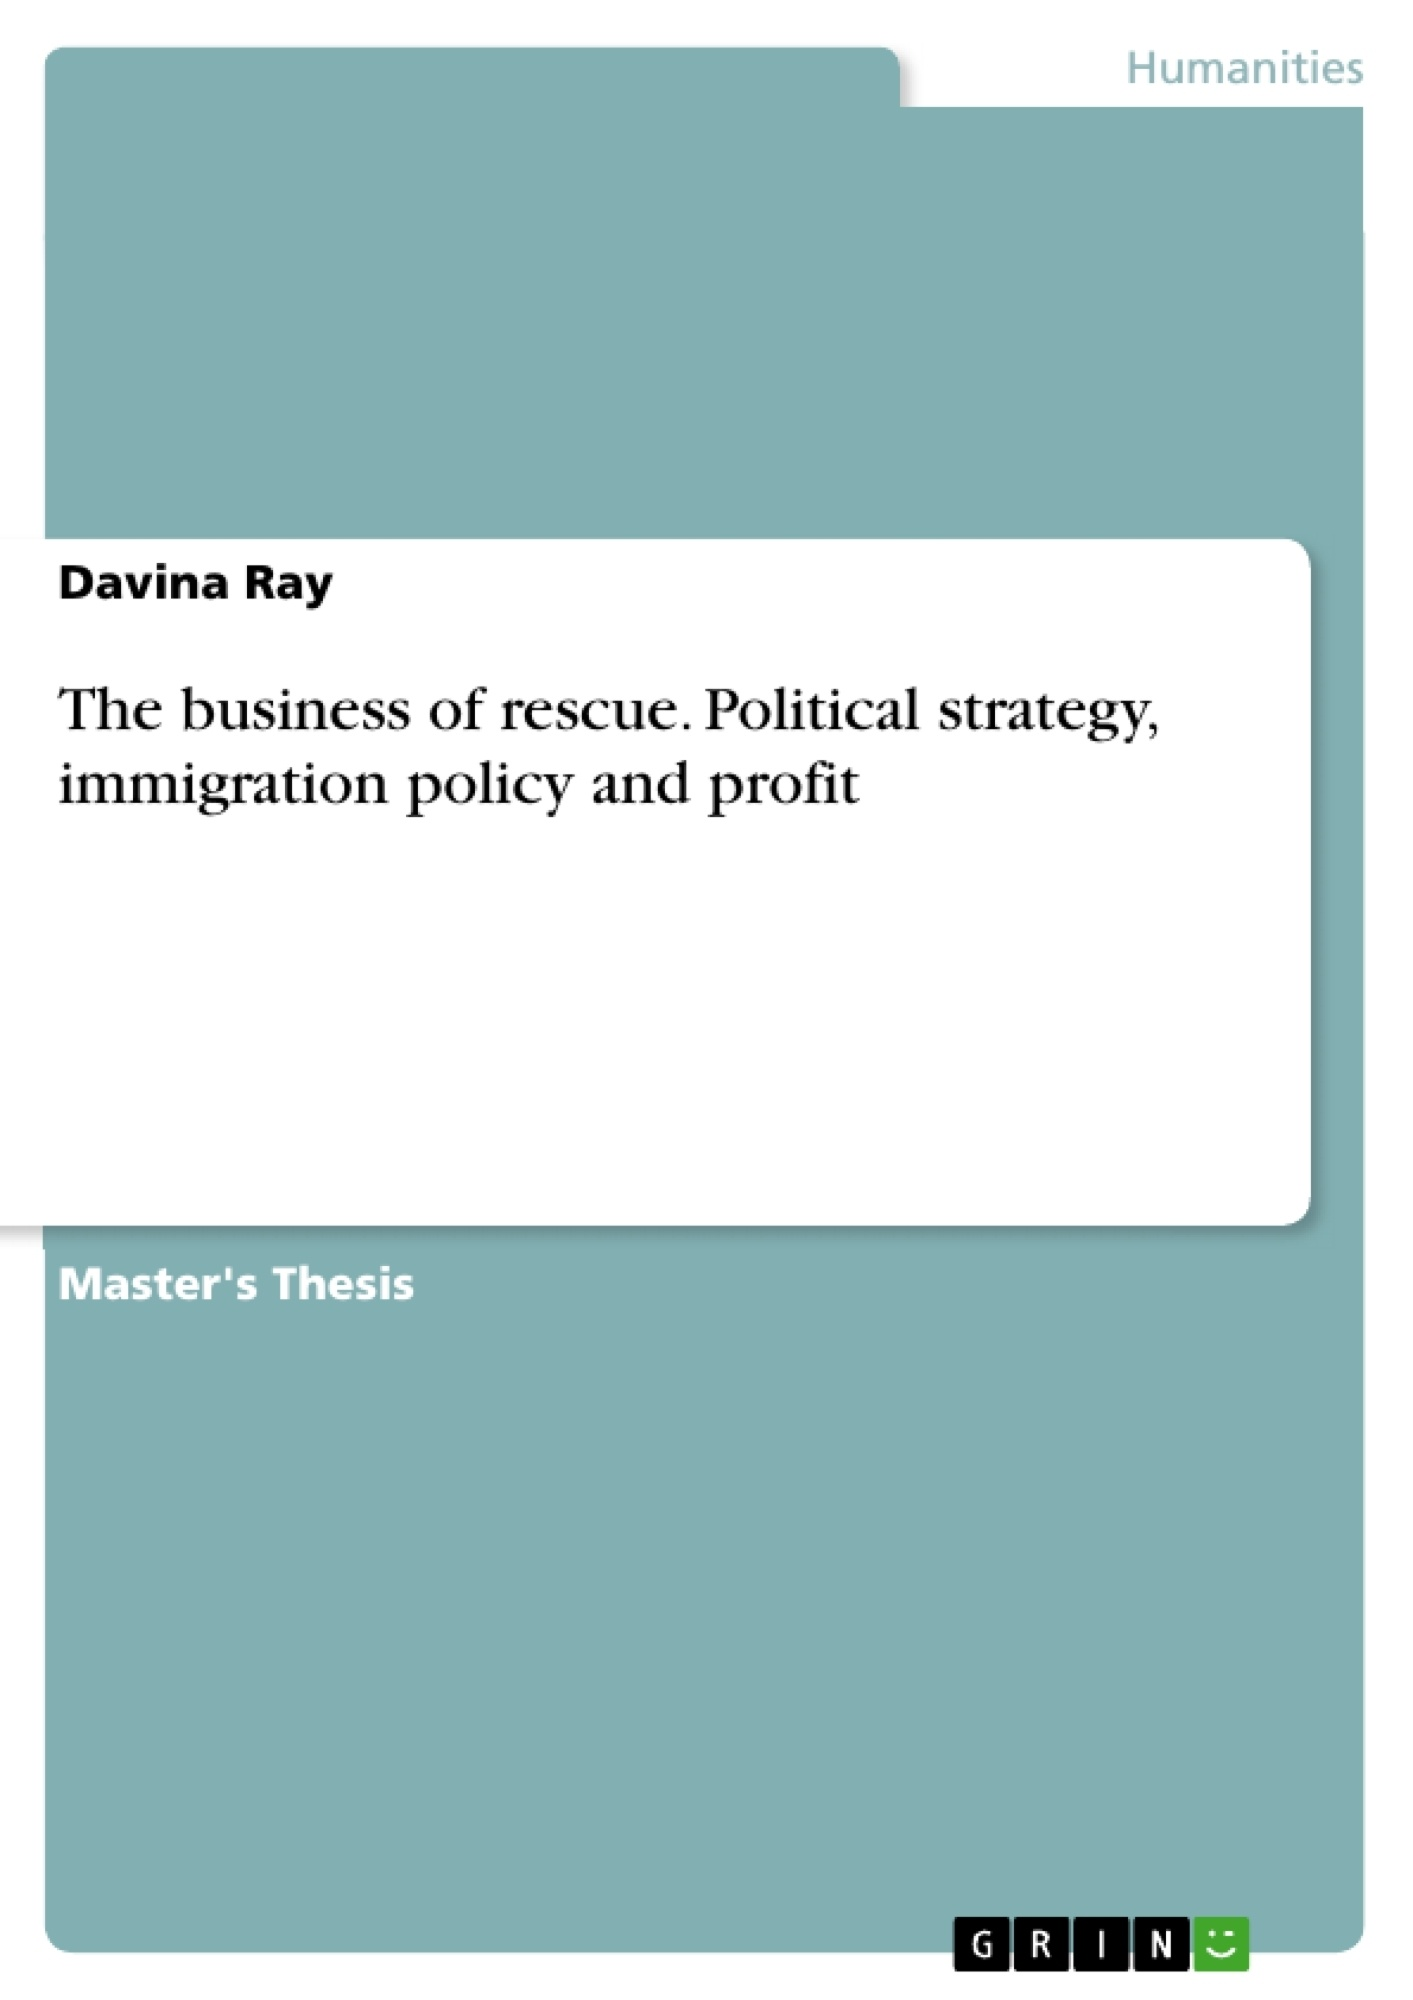 Title: The business of rescue. Political strategy, immigration policy and profit